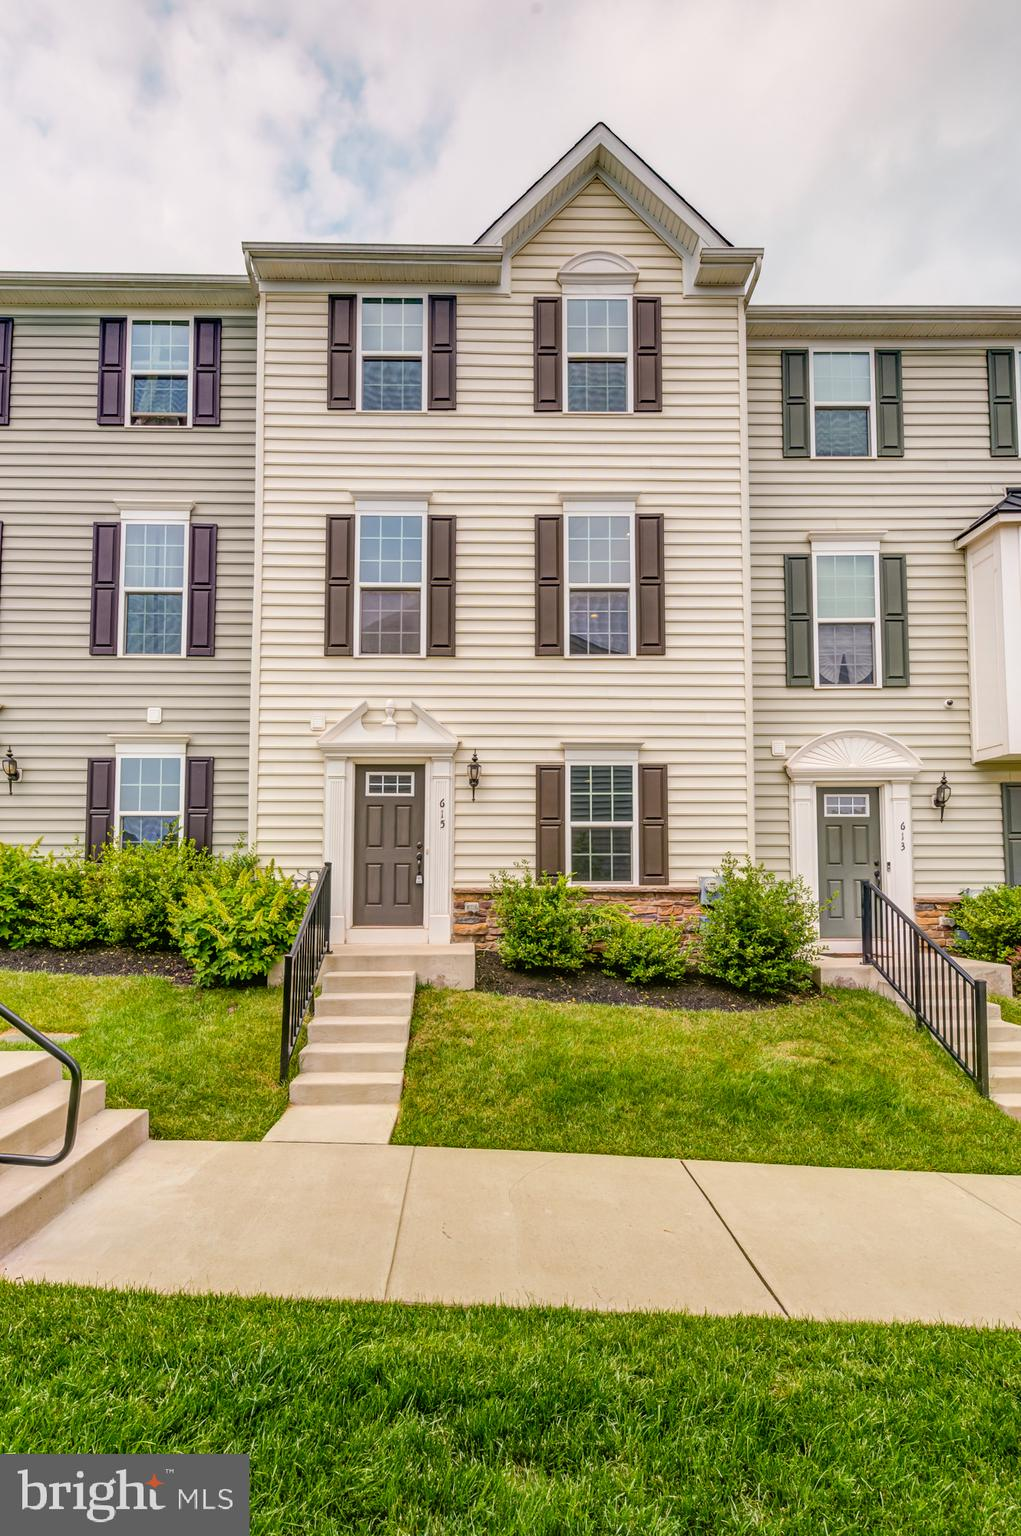 Welcome to 615 Washington Square where you can leave maintenance behind and focus instead on living life to its fullest. This exceptional, ~fully loaded~ 3 bedroom 2 1/2 bath model in absolute pristine condition features an open floor plan, a luxury granite/stainless kitchen with 42~ cabinets, crown moldings, a granite island, recessed lighting and a luxury GE appliance package, hardwood flooring, a two car garage, and a luxury en suite with frameless walk-in glass shower stall including dual rainmaker faucets, granite double vanity, and ceramic tile (floor and surround).  Entertain with pride in your meticulously maintained, sunny, and very spacious open concept interior, or escort your guests through   your beautiful French doors to your oversized composite deck and fire up the barbecue! On game days, gather with friends in your finished walkout basement with powder room and recessed lighting package. Highly rated Owen J Robert school district. You will not find a more luxurious home in such pristine condition at this price-point!